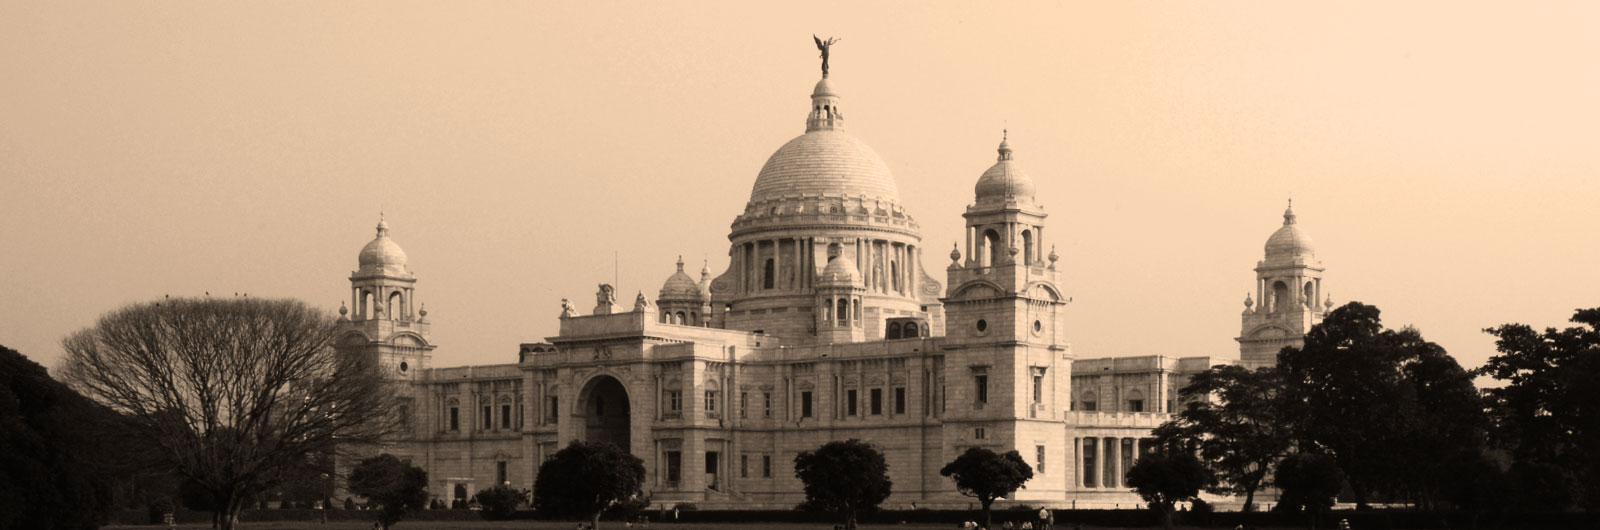 victoria memorial hall kolkata